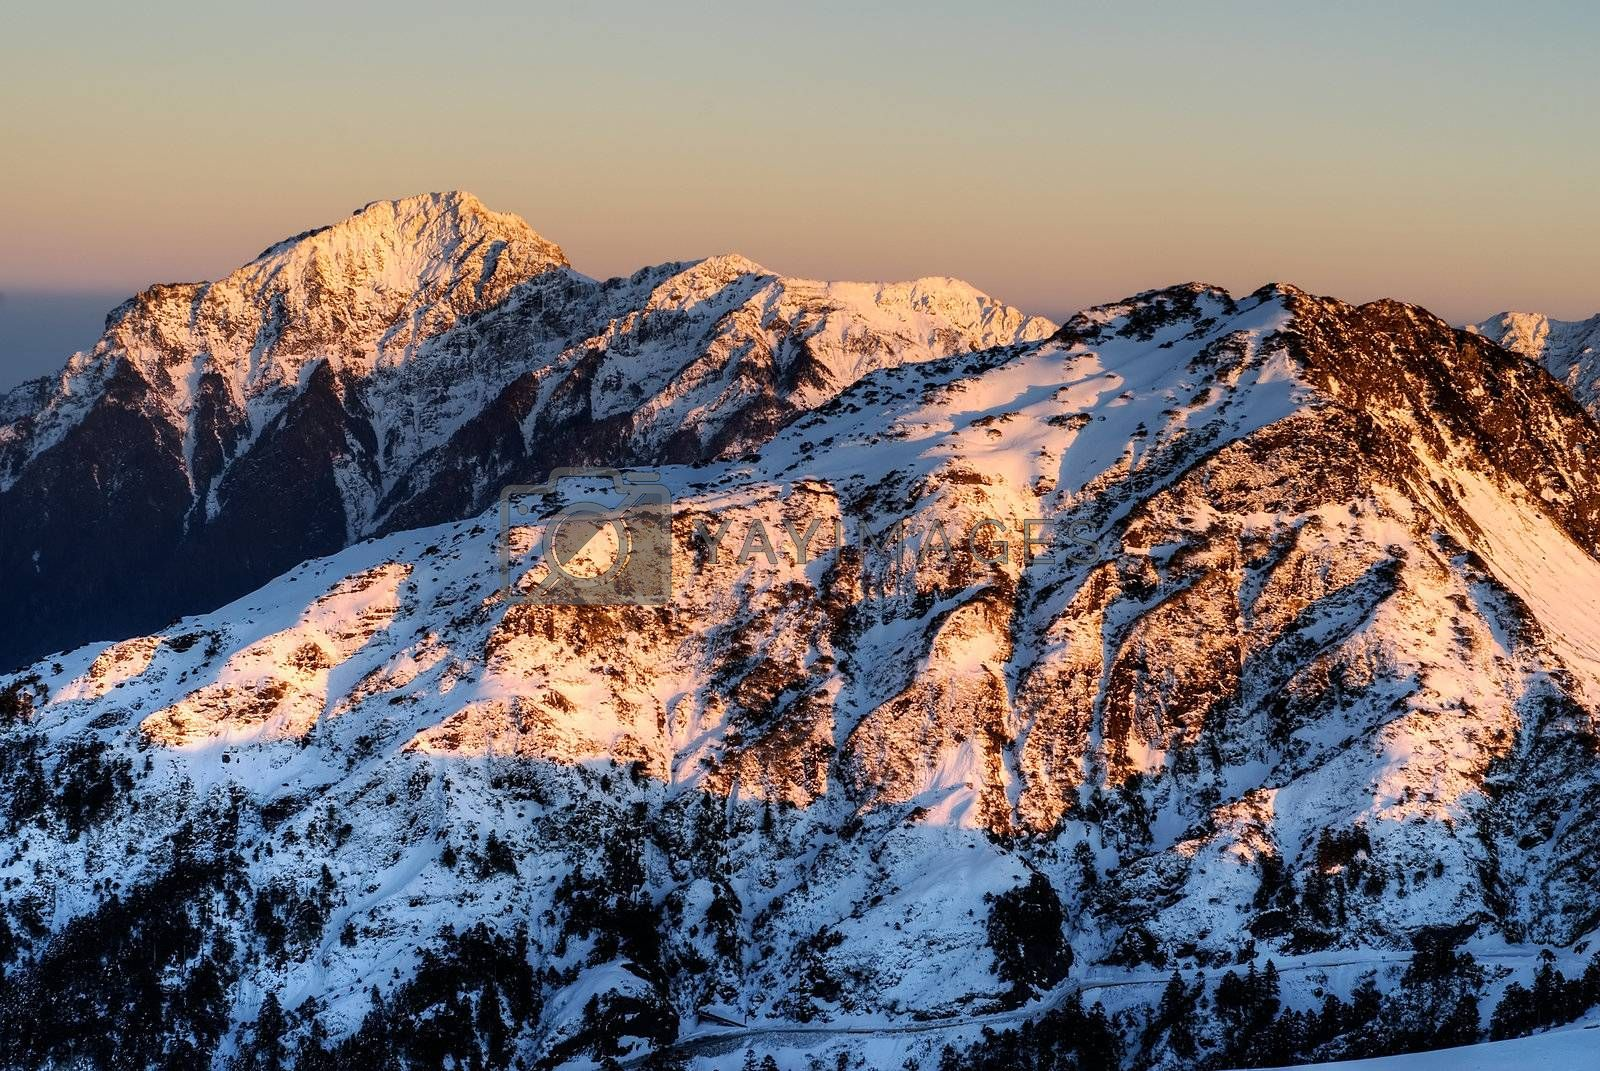 Landscape of snow mountain in sunset with golden color in Taiwan, Asia.